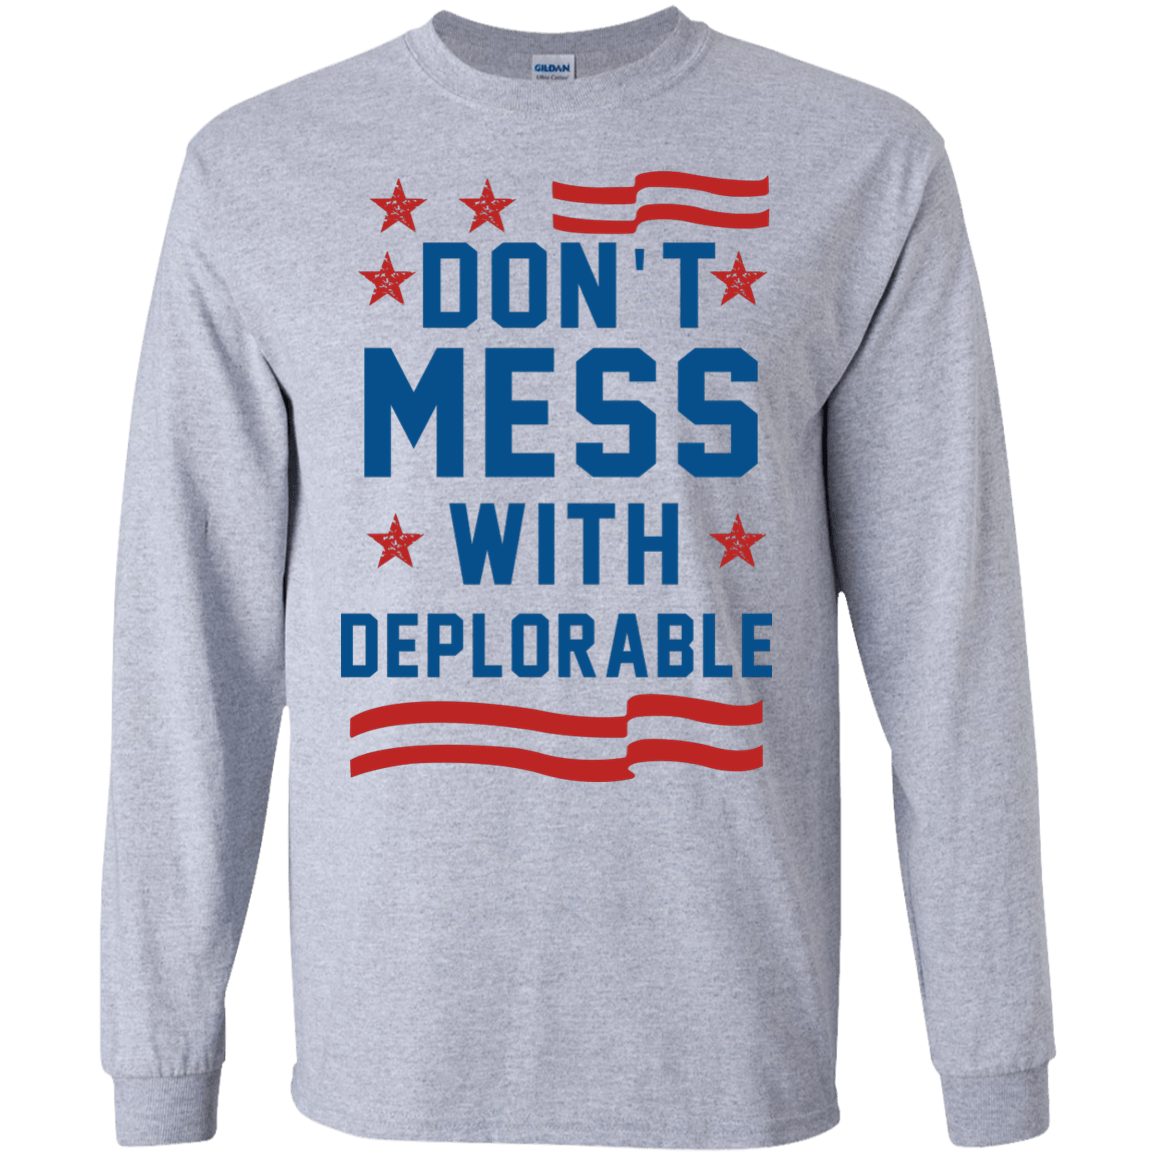 Don't Mess With Deplorable t shirt & hoodies - Support Trump